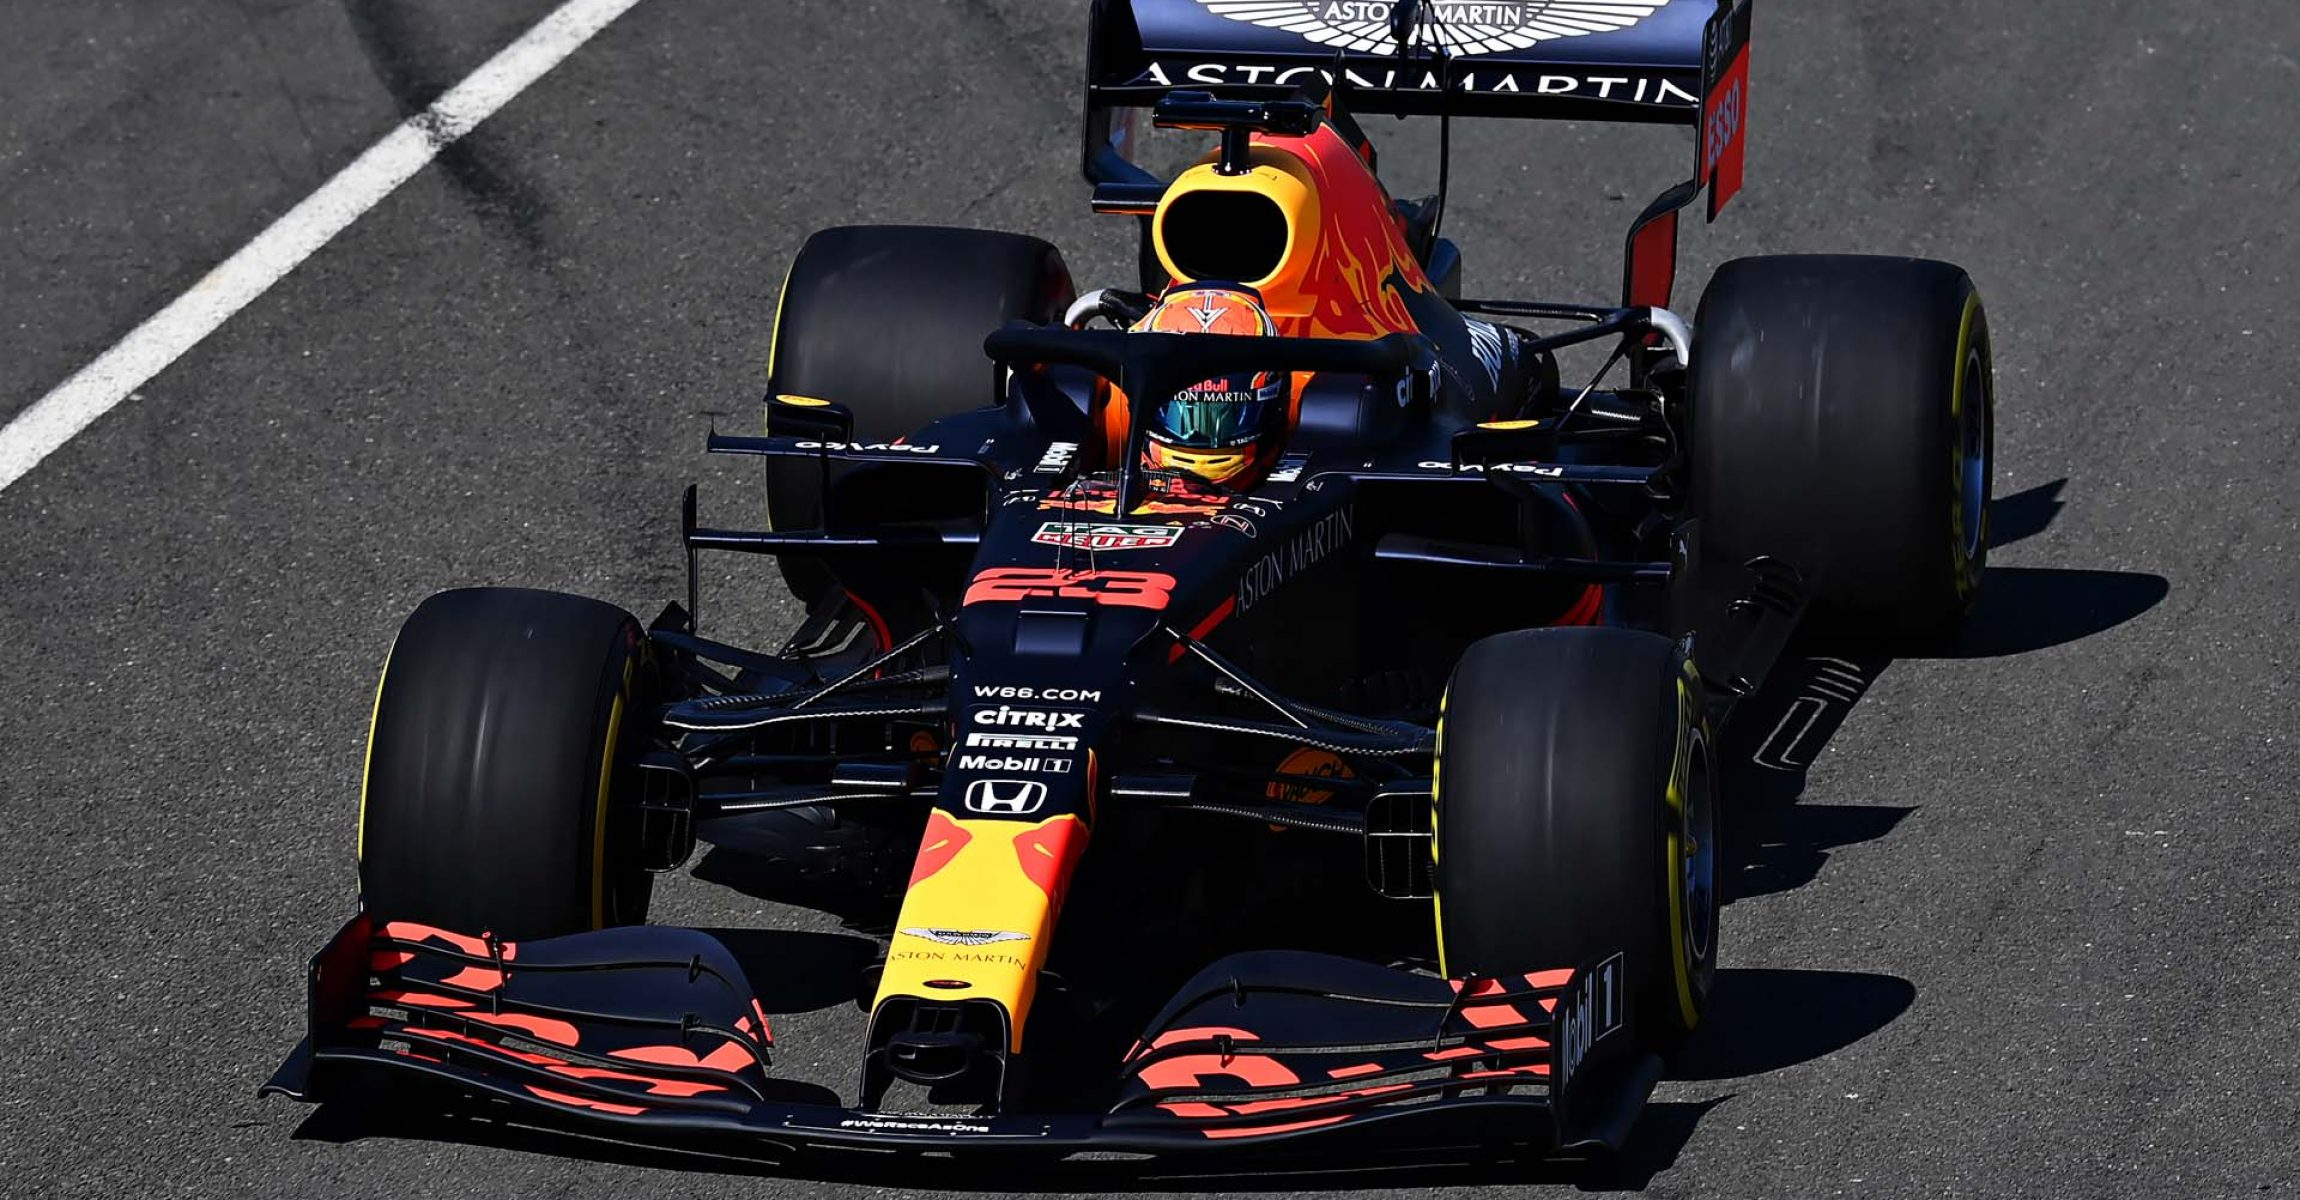 NORTHAMPTON, ENGLAND - JUNE 25: Alexander Albon of Thailand driving the (23) Aston Martin Red Bull Racing RB16 in the Pitlane during the Red Bull Racing RB16 Filming Day at Silverstone Circuit on June 25, 2020 in Northampton, England. (Photo by Clive Mason/Getty Images) // Getty Images / Red Bull Content Pool // AP-24EEHSYJN1W11 // Usage for editorial use only //